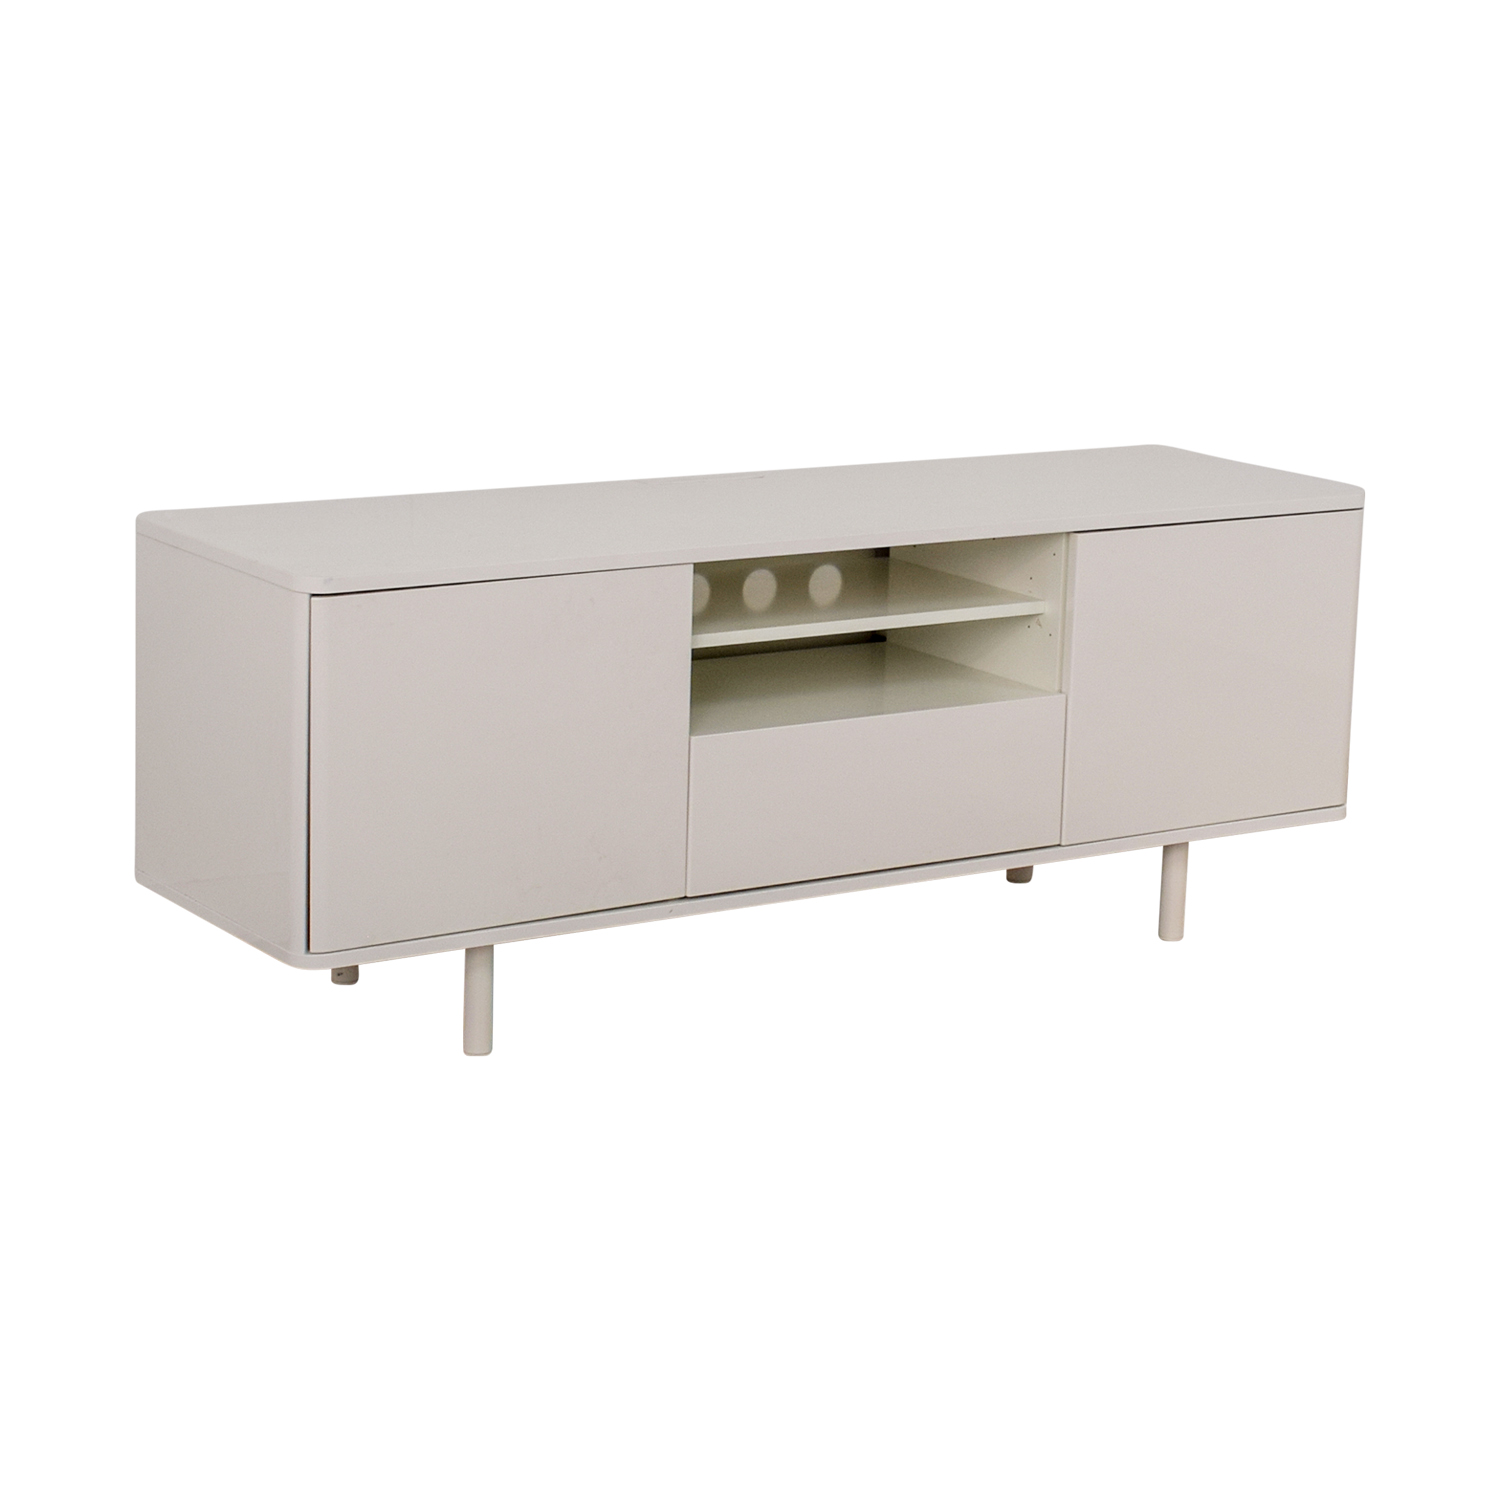 45 off ikea ikea mostorp high gloss white media unit storage. Black Bedroom Furniture Sets. Home Design Ideas